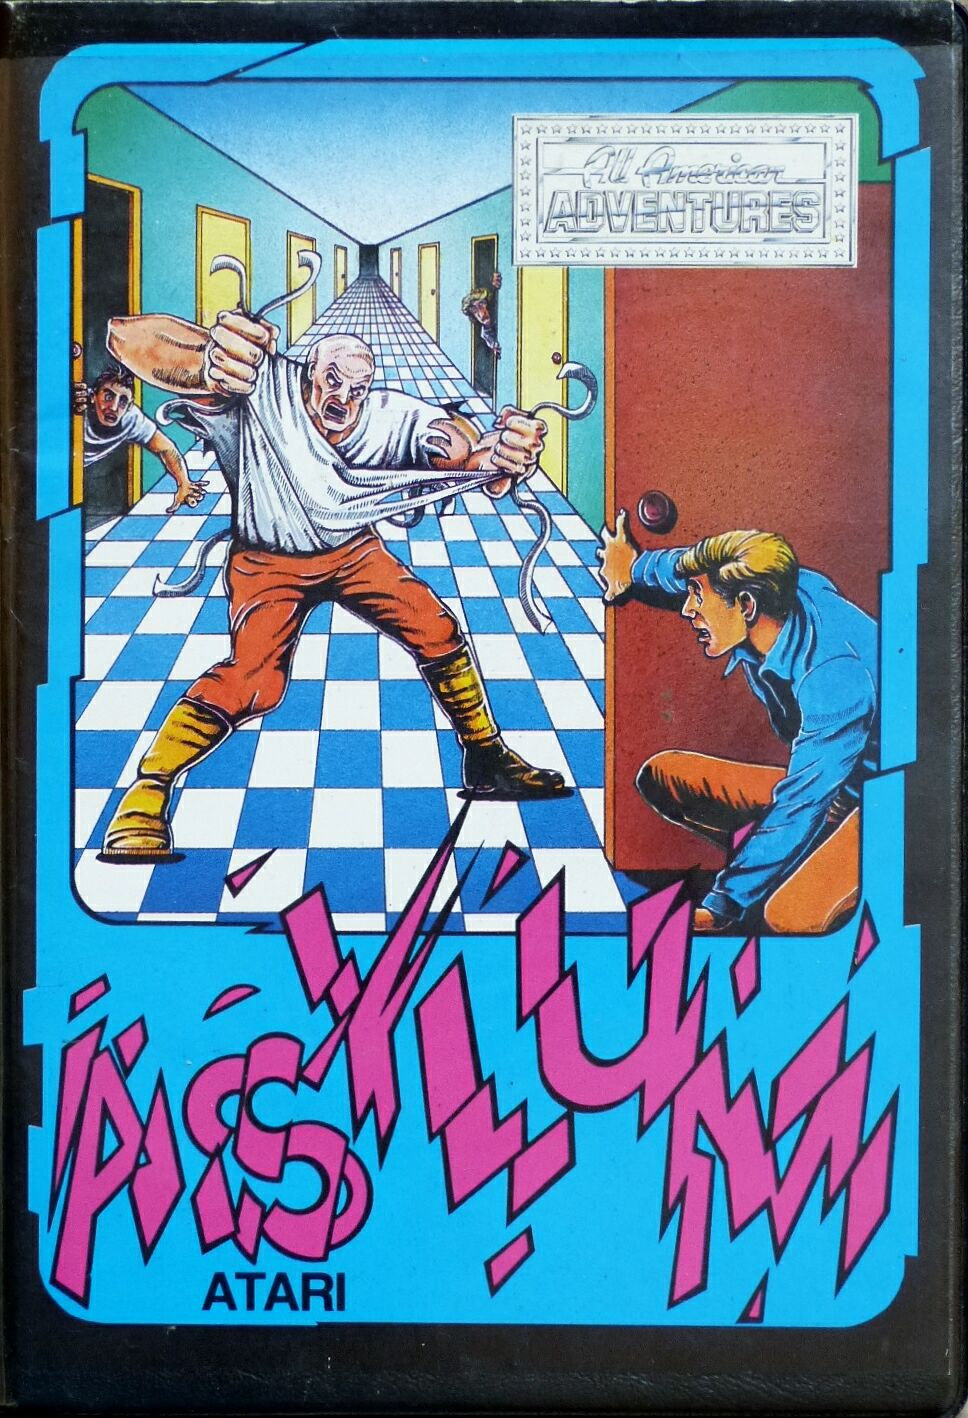 Asylum (U.S. Gold) (Atari 400/800) (Disk Version)